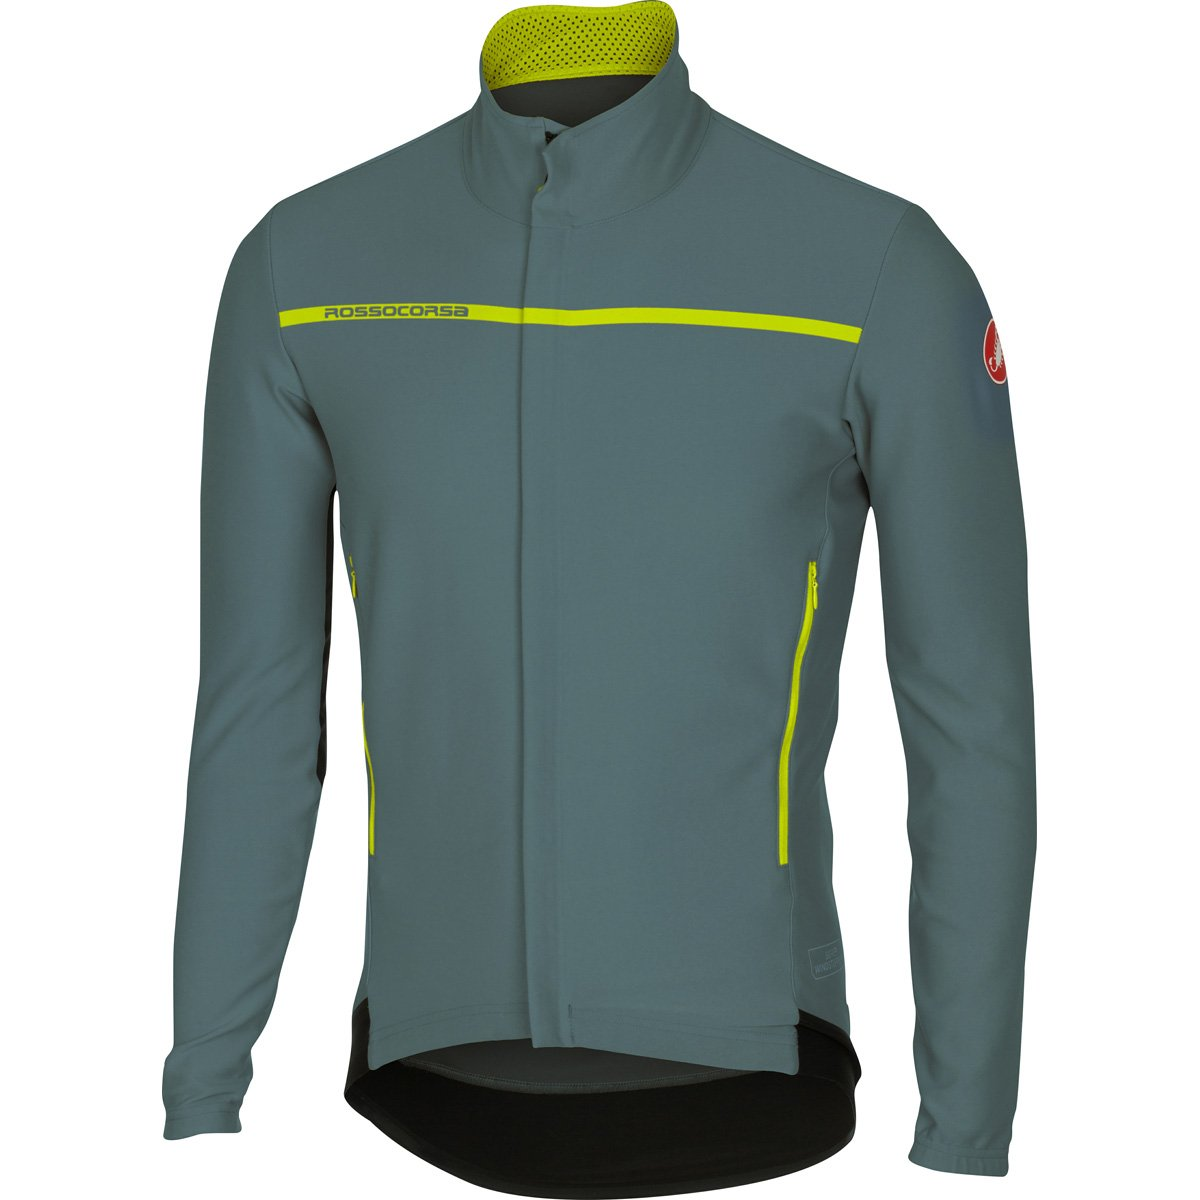 Castelli Mens Perfetto Cycling Jacket size L: Amazon.es ...